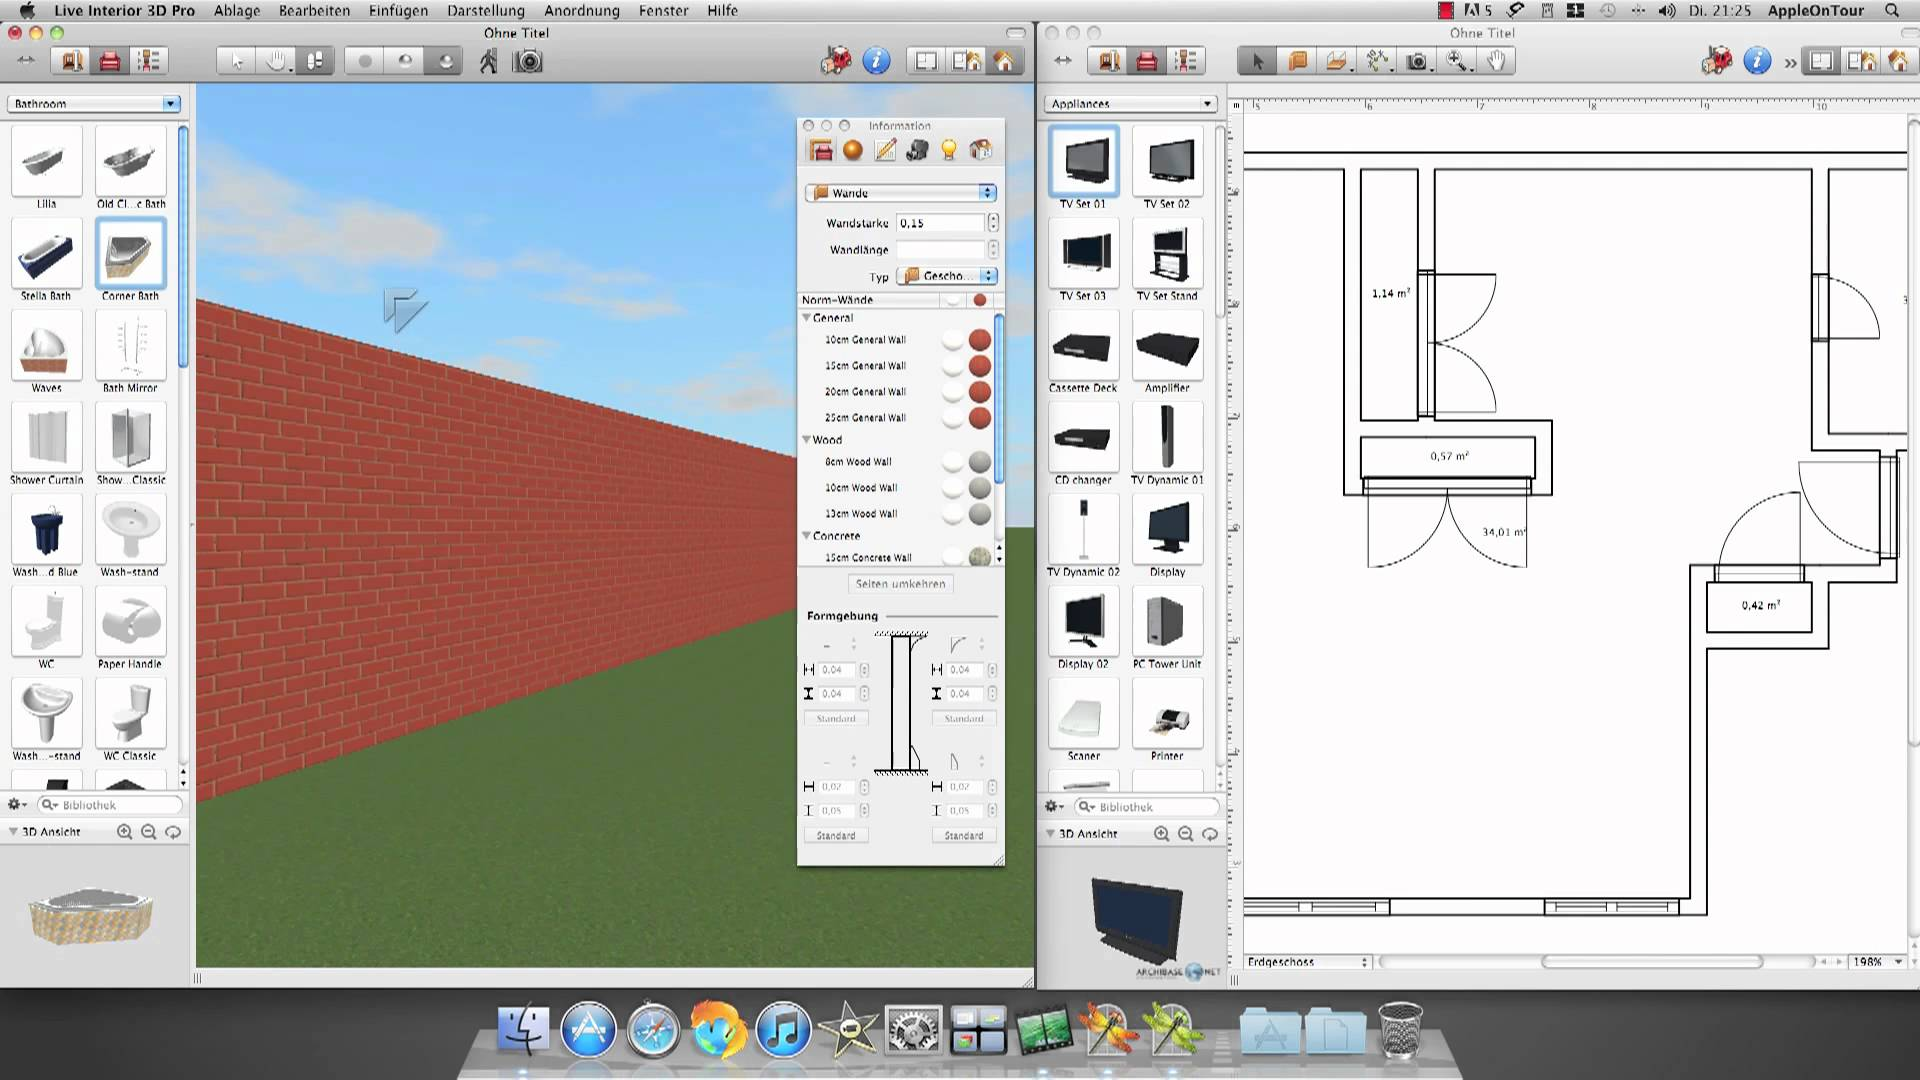 Free interior design for Mac on security home design, morgan home design, zen home design, revit home design, bradford home design, mobile home design, gucci home design, white home design, netzero home design, sheffield home design, horizon home design, apple home design, giorgio armani home design, google home design, high end home design, design home design, sketchup home design, open source home design, art home design, computer home design,